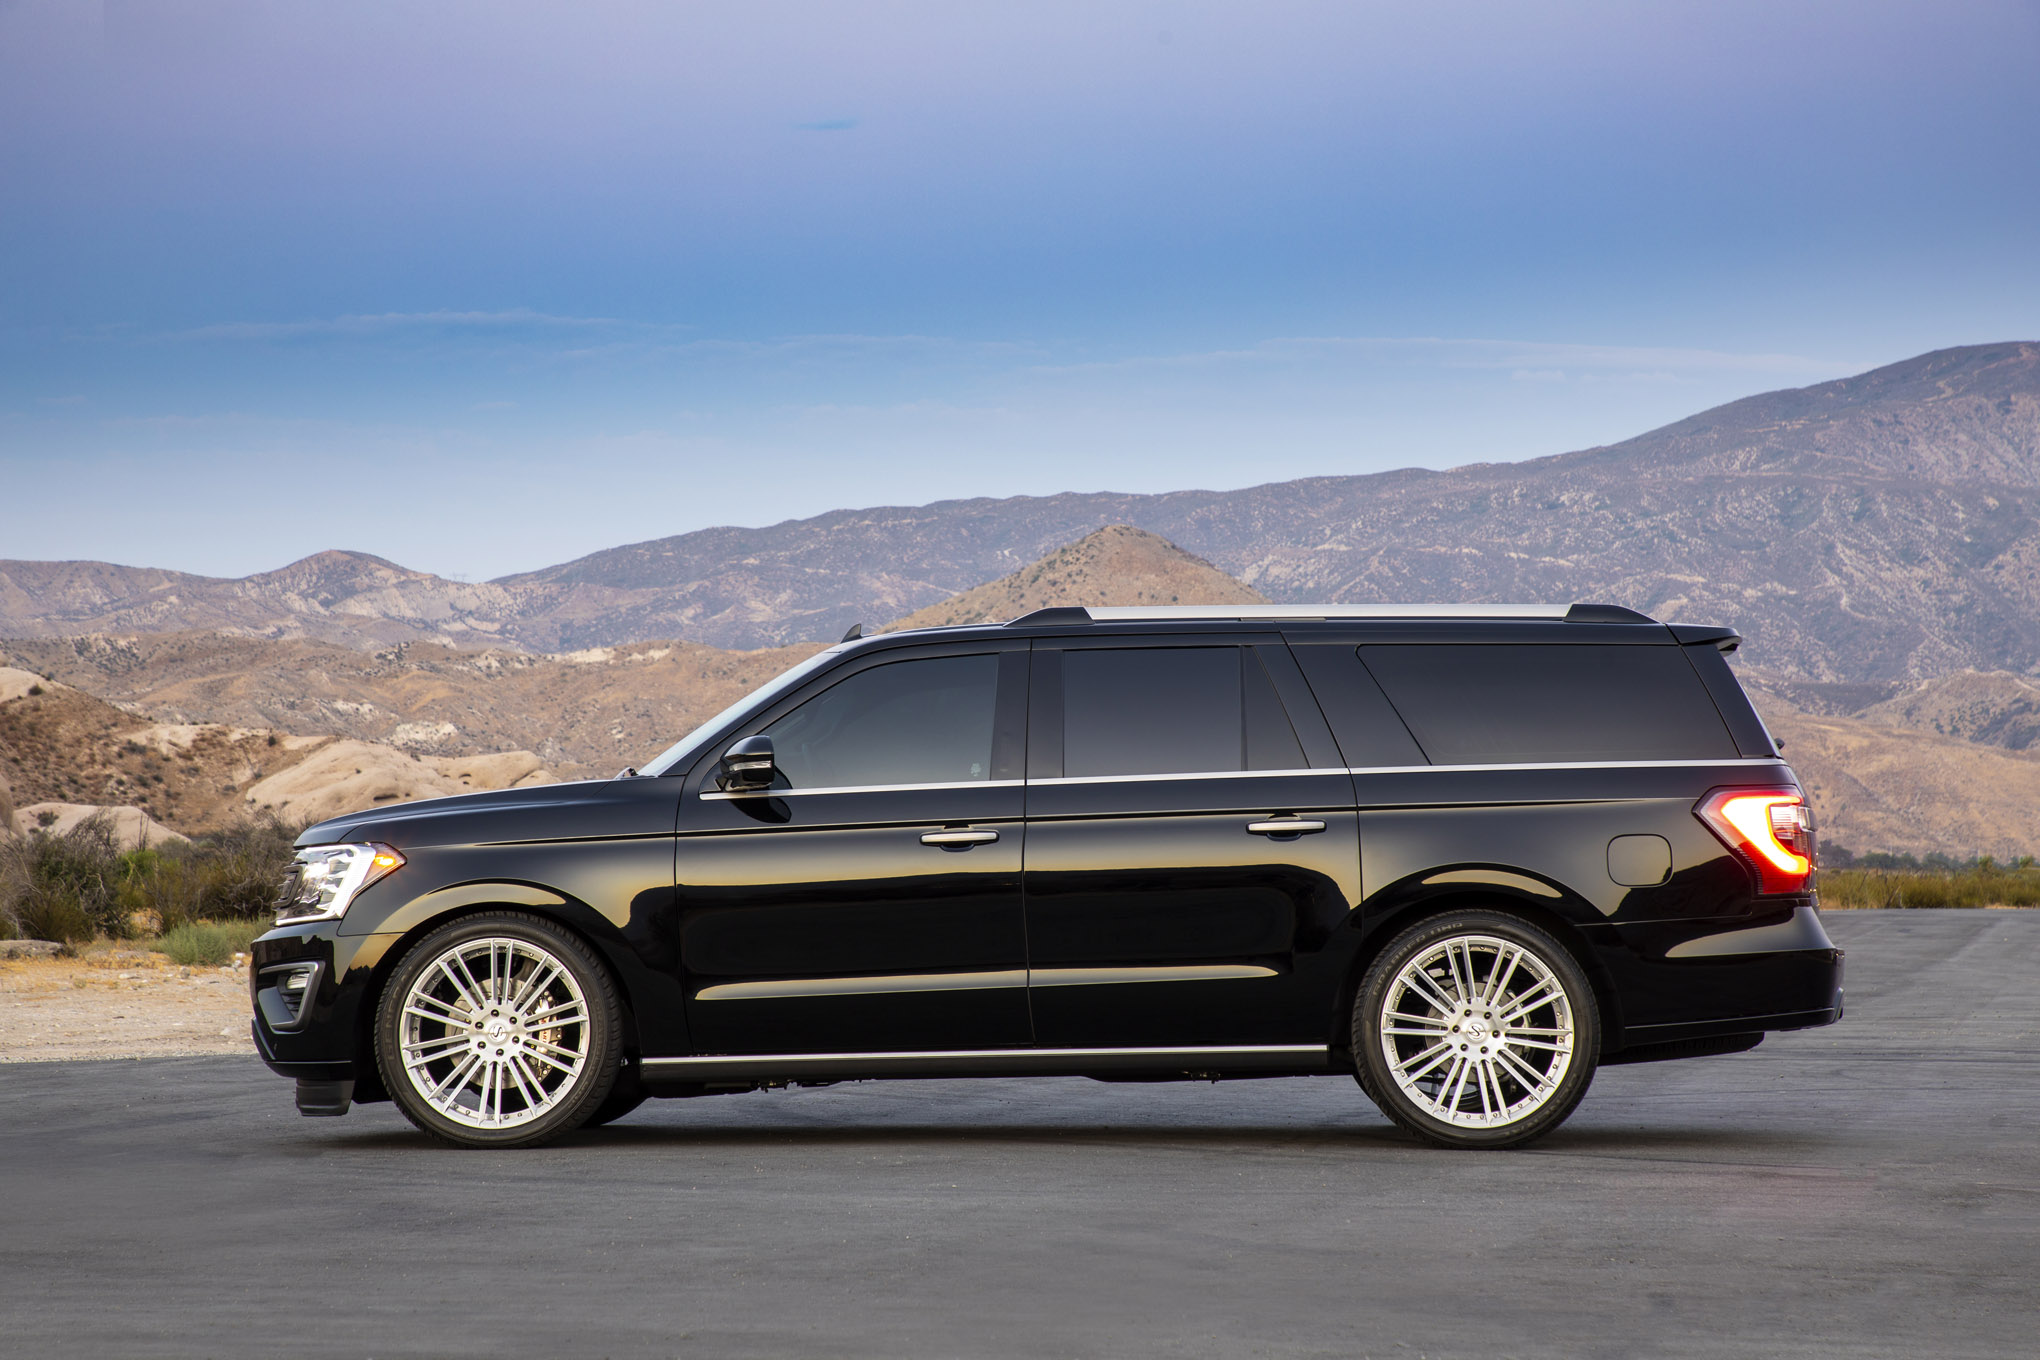 2018 Ford Expedition Concours De Expedition